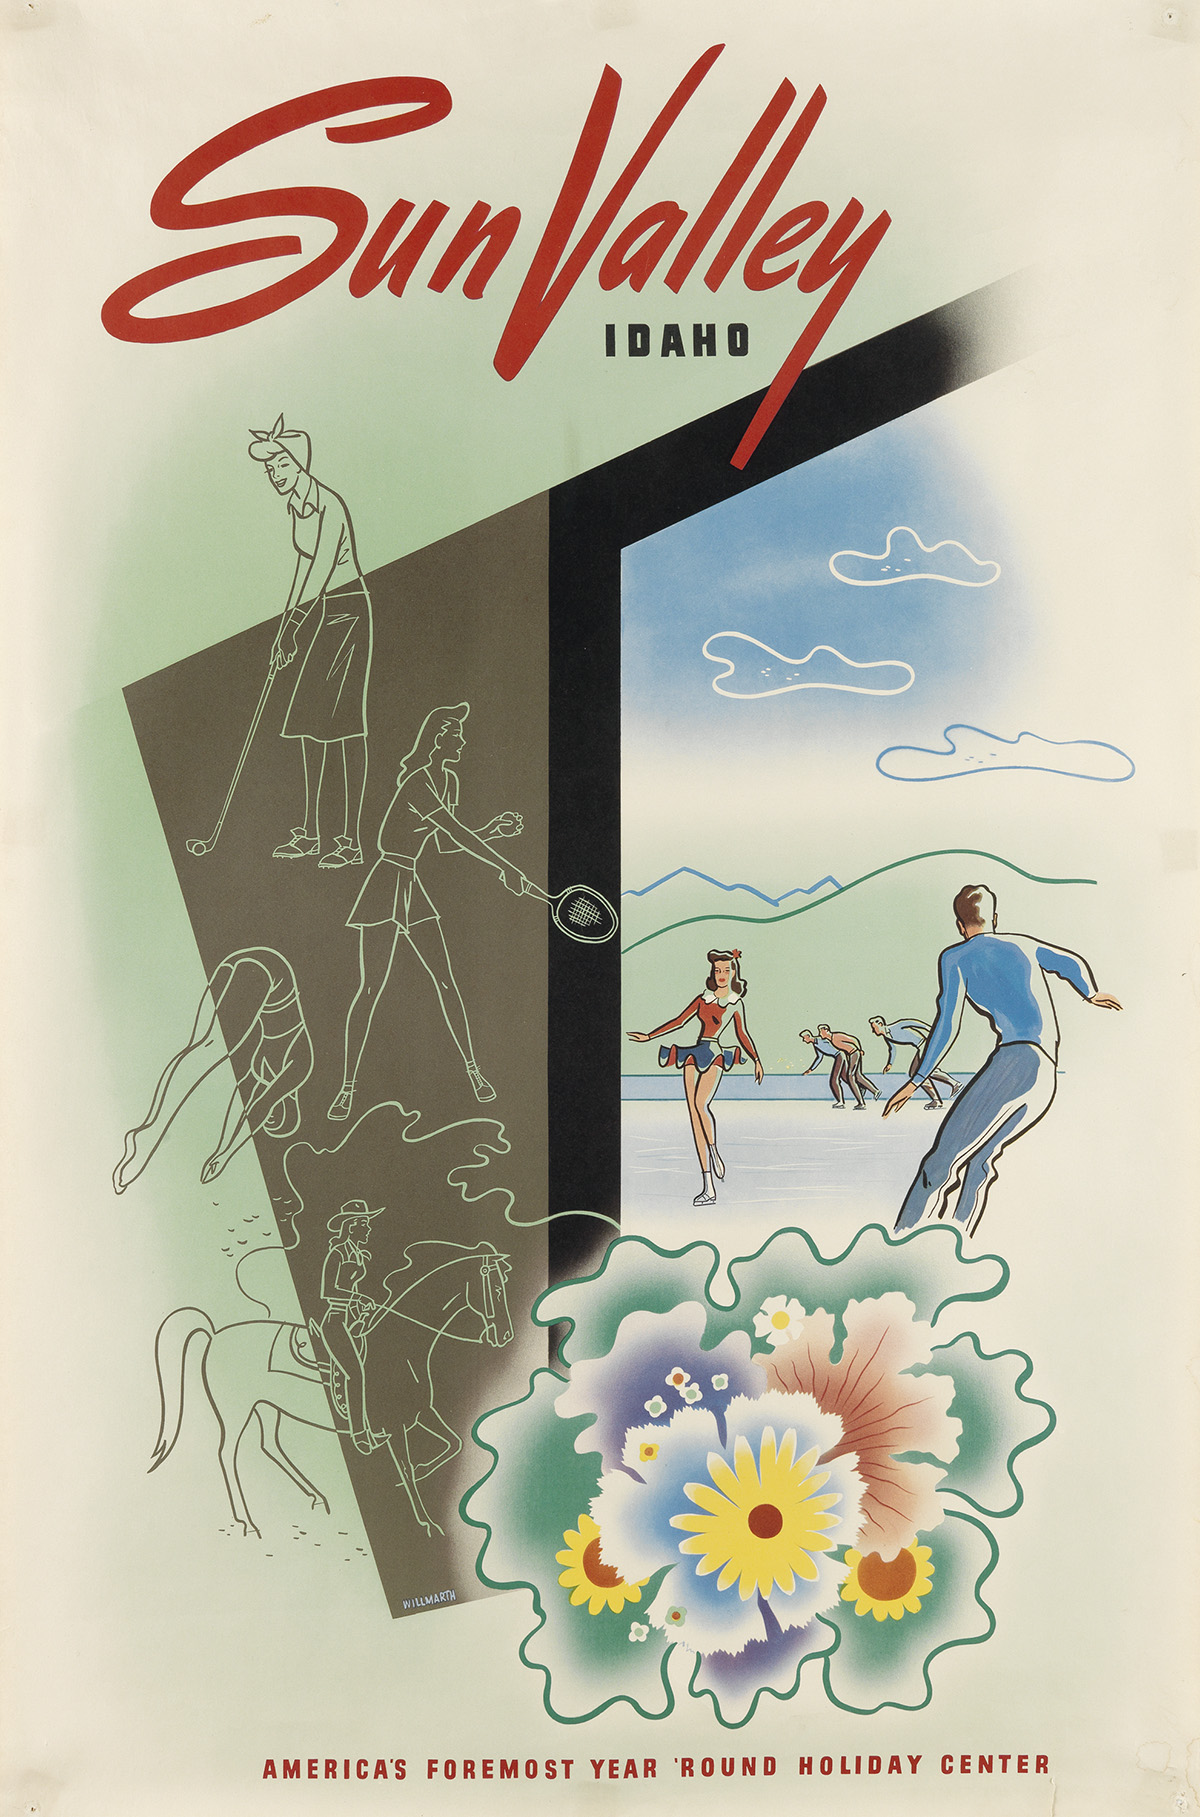 VARIOUS-ARTISTS-SUN-VALLEY-Group-of-3-posters-Circa-1940s-19